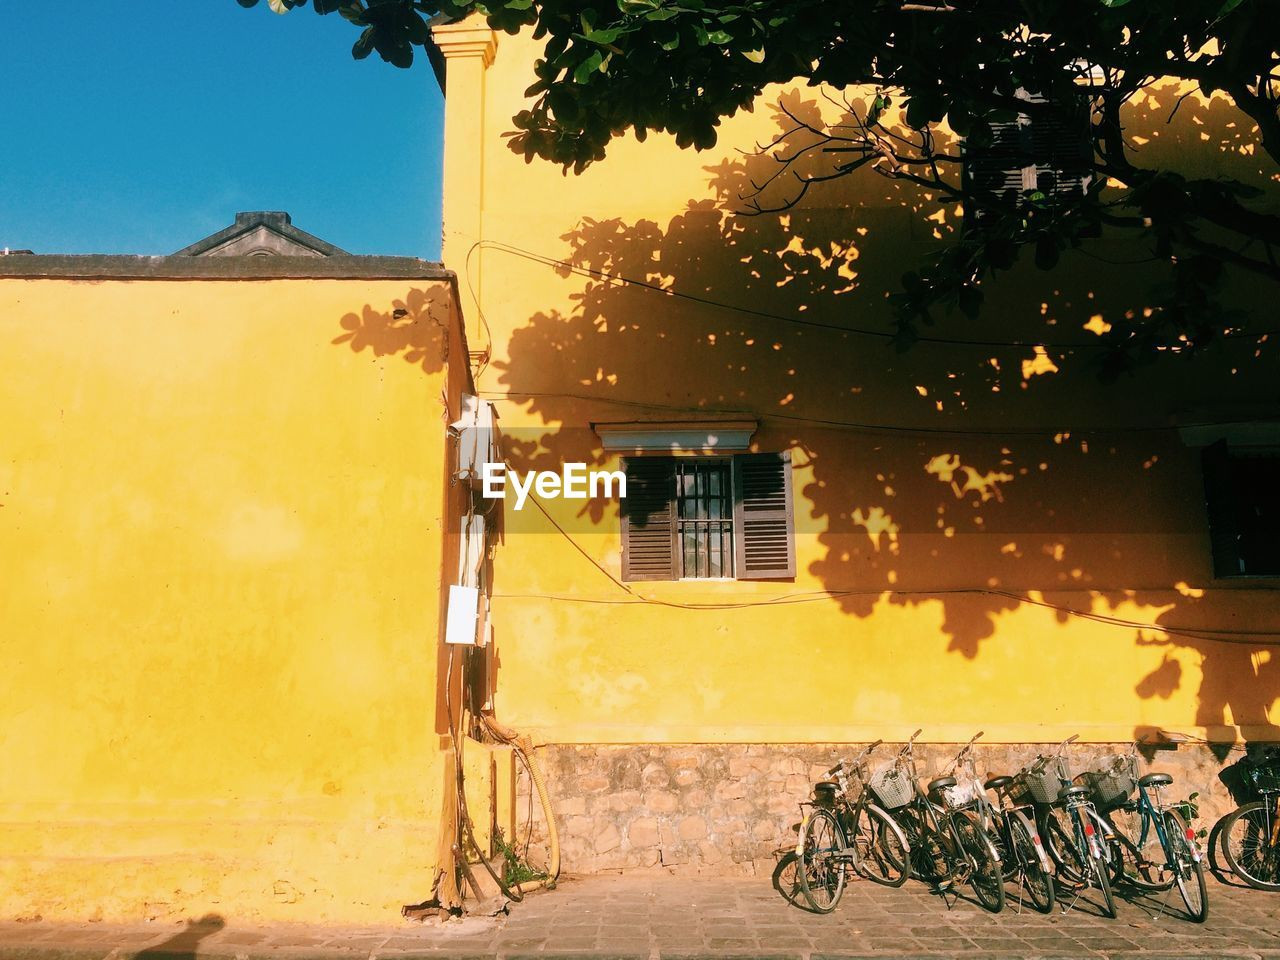 building exterior, architecture, built structure, bicycle, building, nature, sunlight, house, residential district, transportation, day, plant, city, no people, outdoors, tree, sky, shadow, yellow, mode of transportation